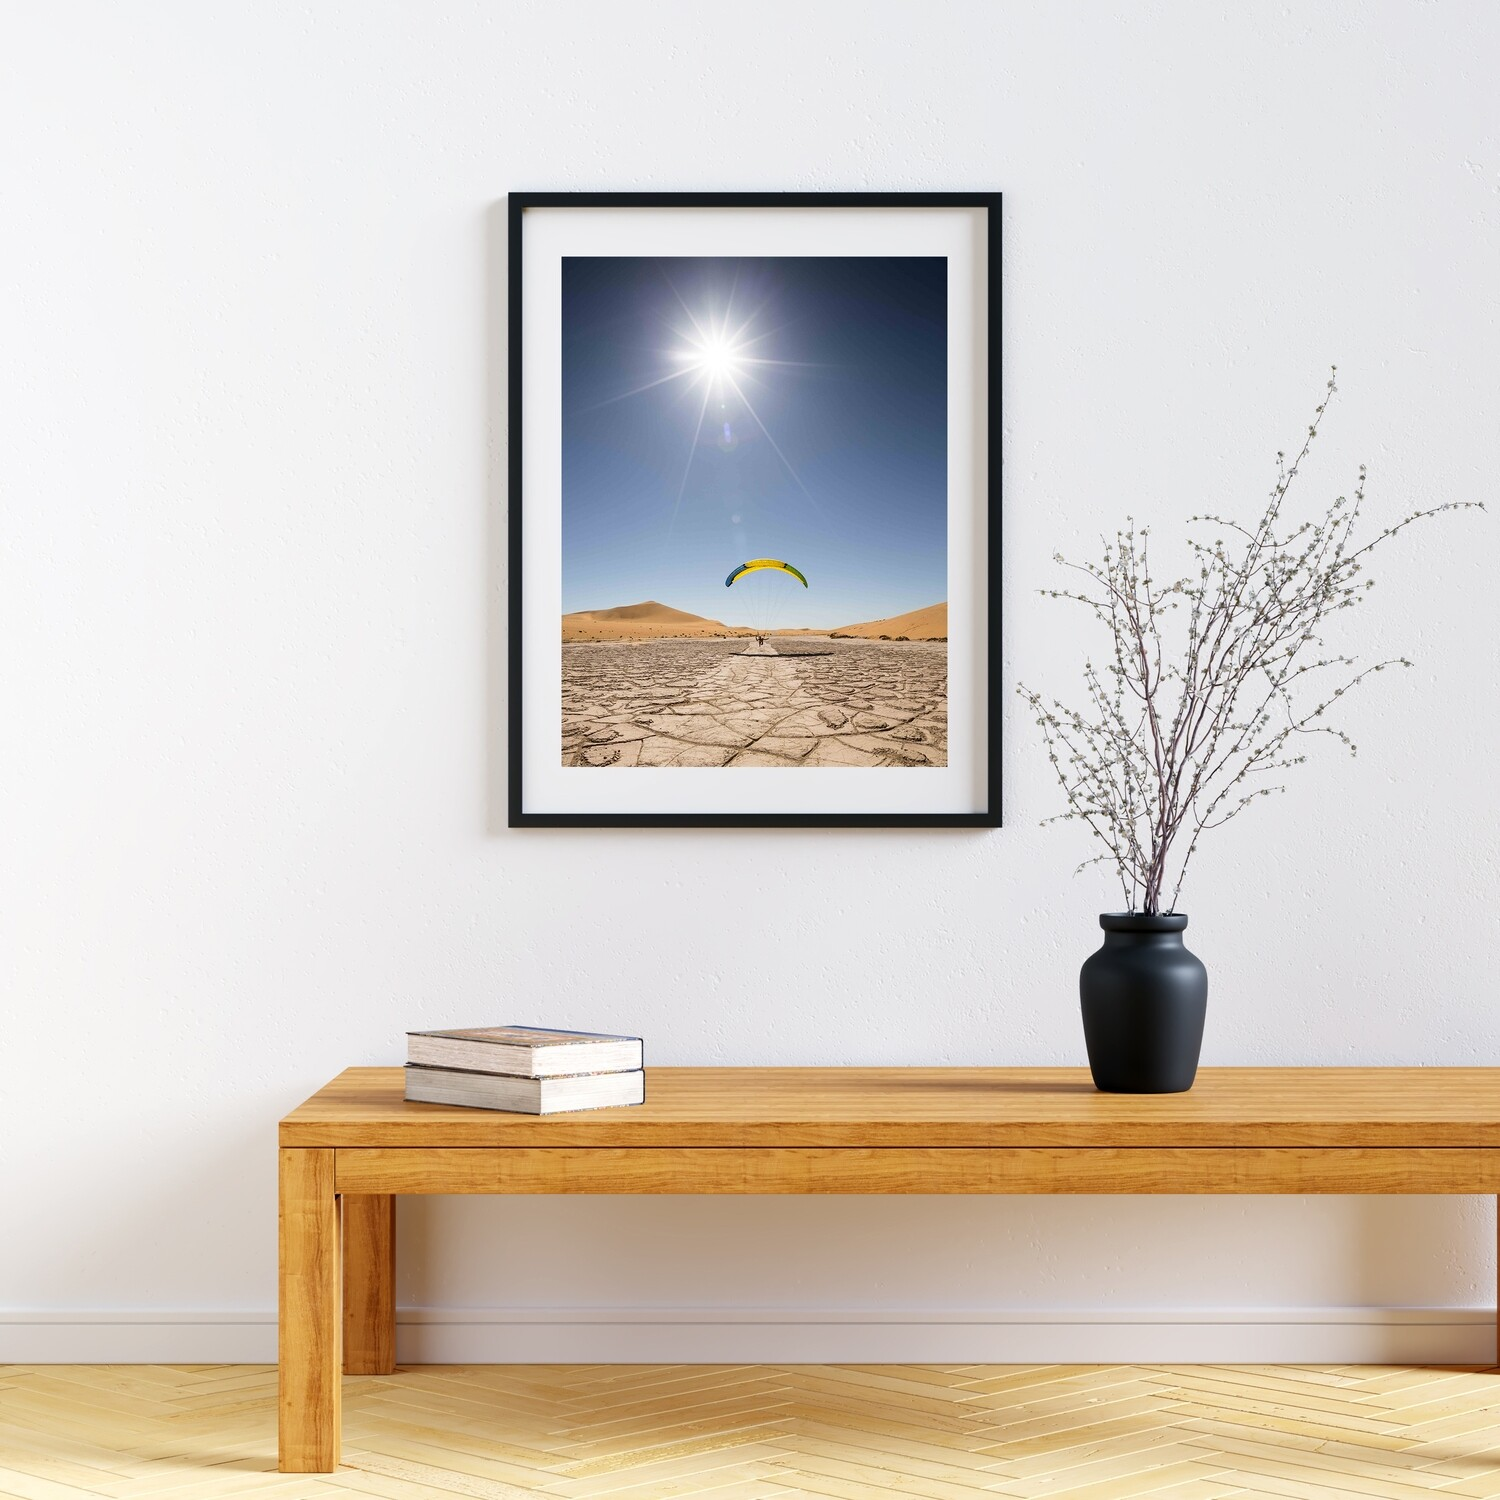 """Desert landing"". Paraglider pilot landing in line with the ground drawing in the Namibian's desert. Art Print on Hahnemühle Torchon 50cm x 40cm"